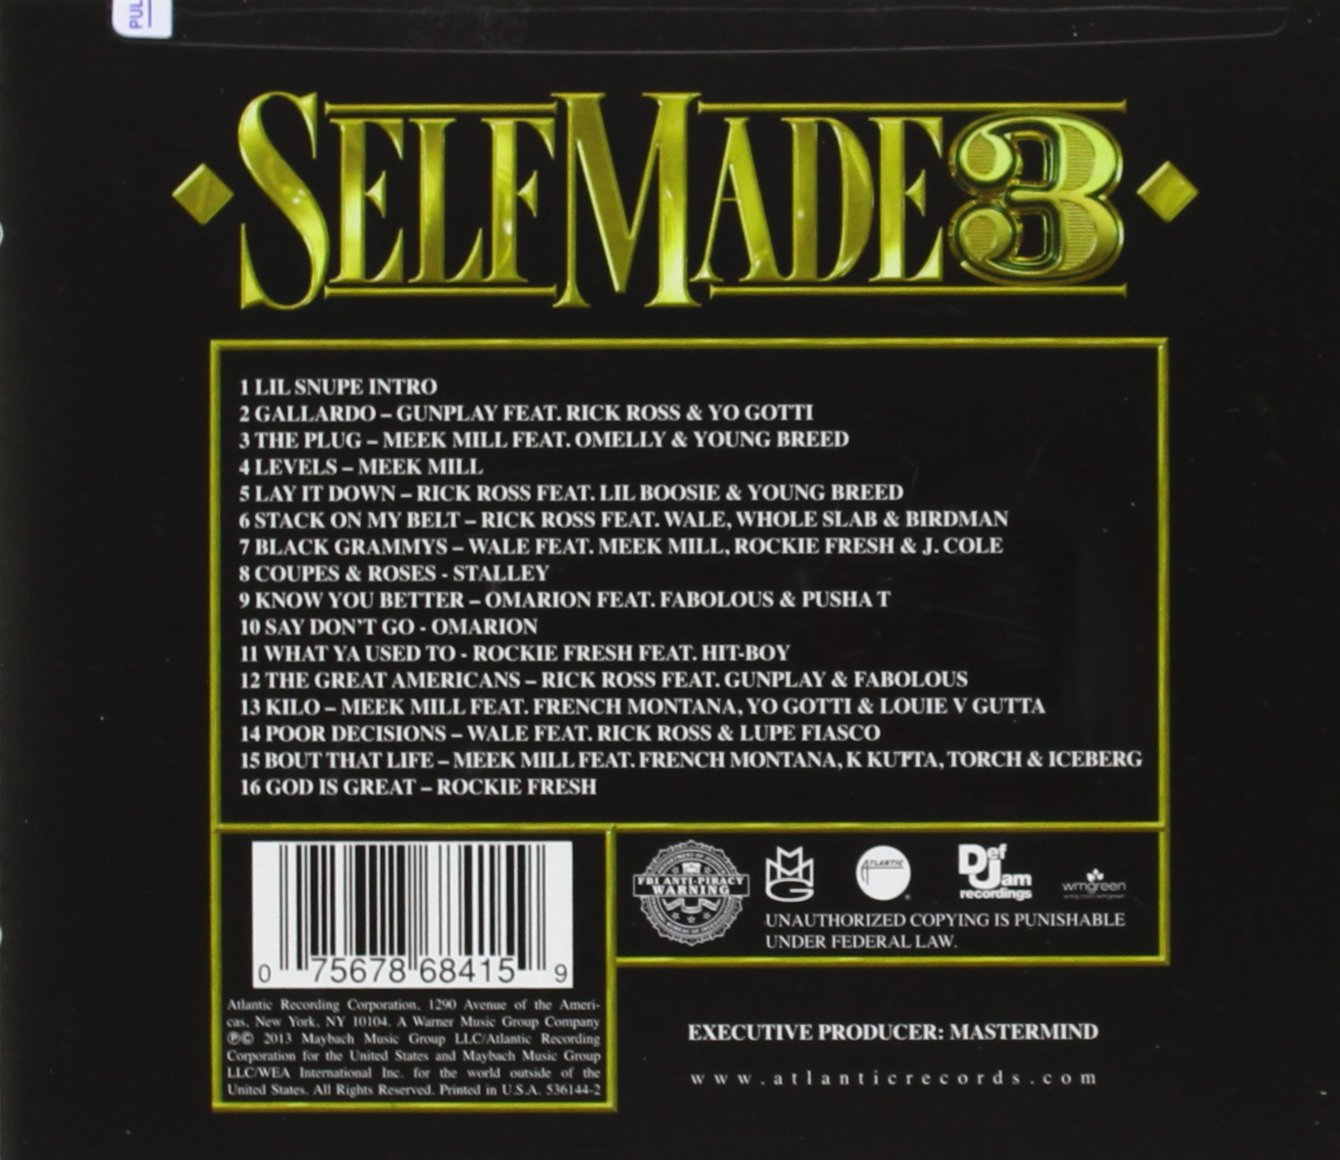 Self made 3 kilo mp3 download